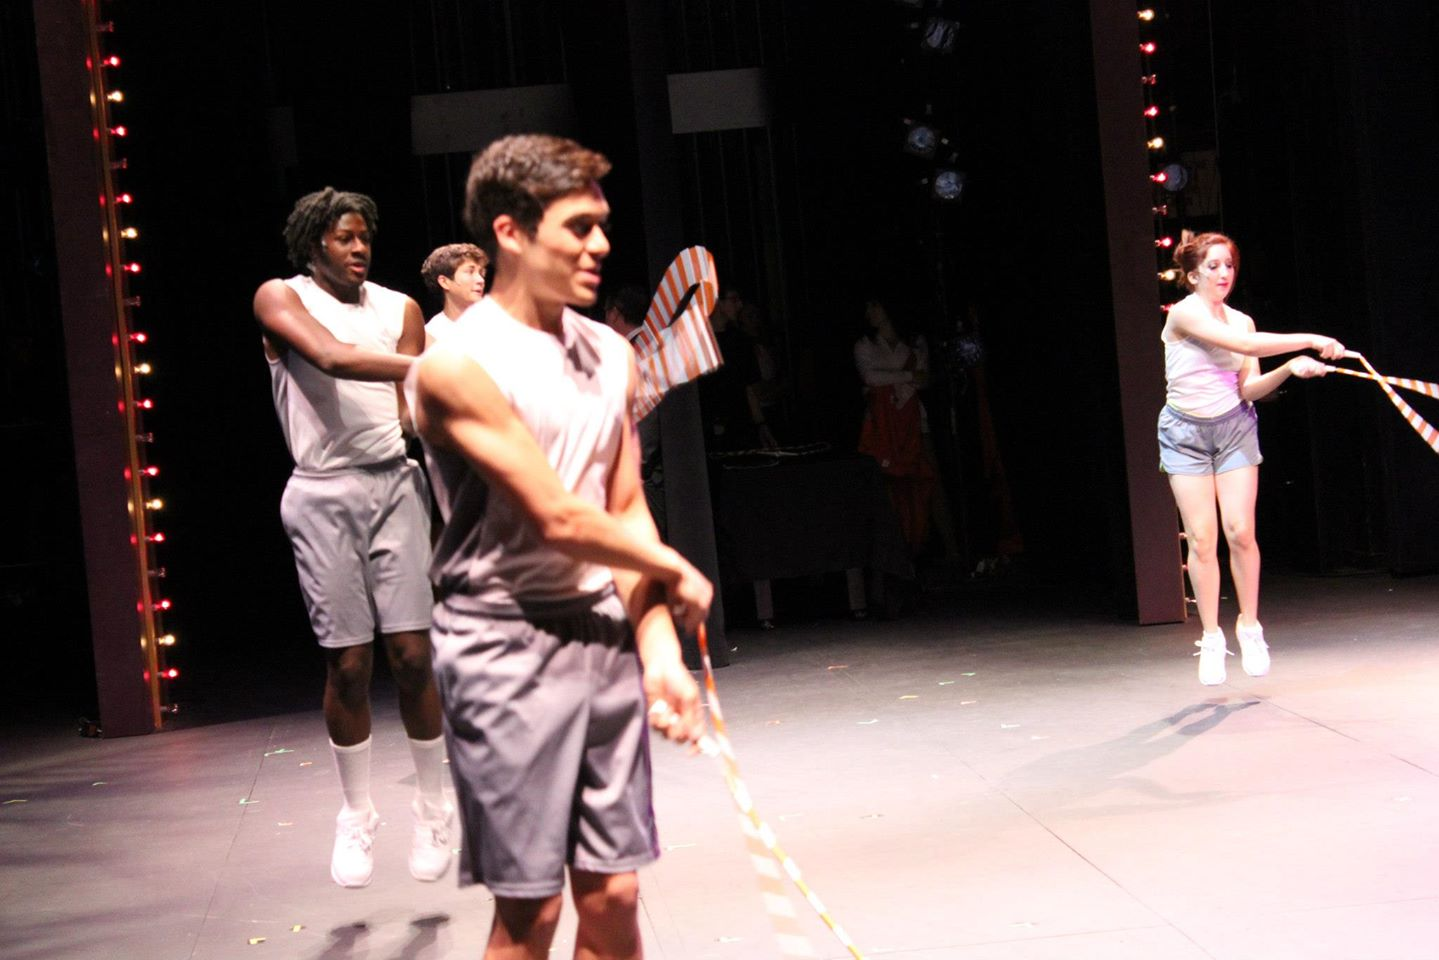 'Legally Blonde The Musical.' Cameron A. Jones, Josh Hedeby, Nick Fernandez, Carly Grossman. (Photo by Cody Cunningham)